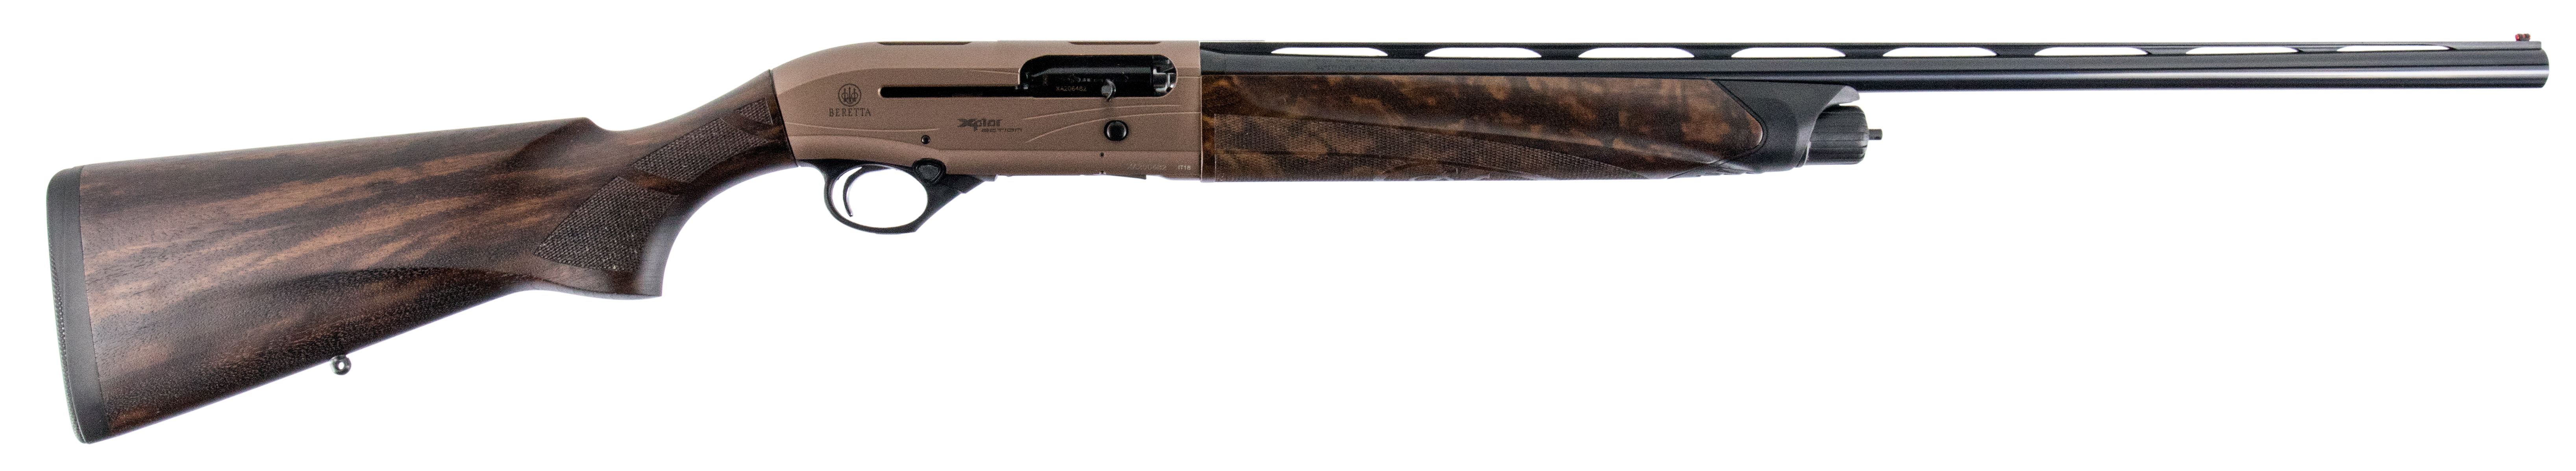 Beretta A400 Xplor Action Semi-Auto Shotgun 3'' 12 Gauge 26'' Bronze Toned Aluminum Alloy - Walnut